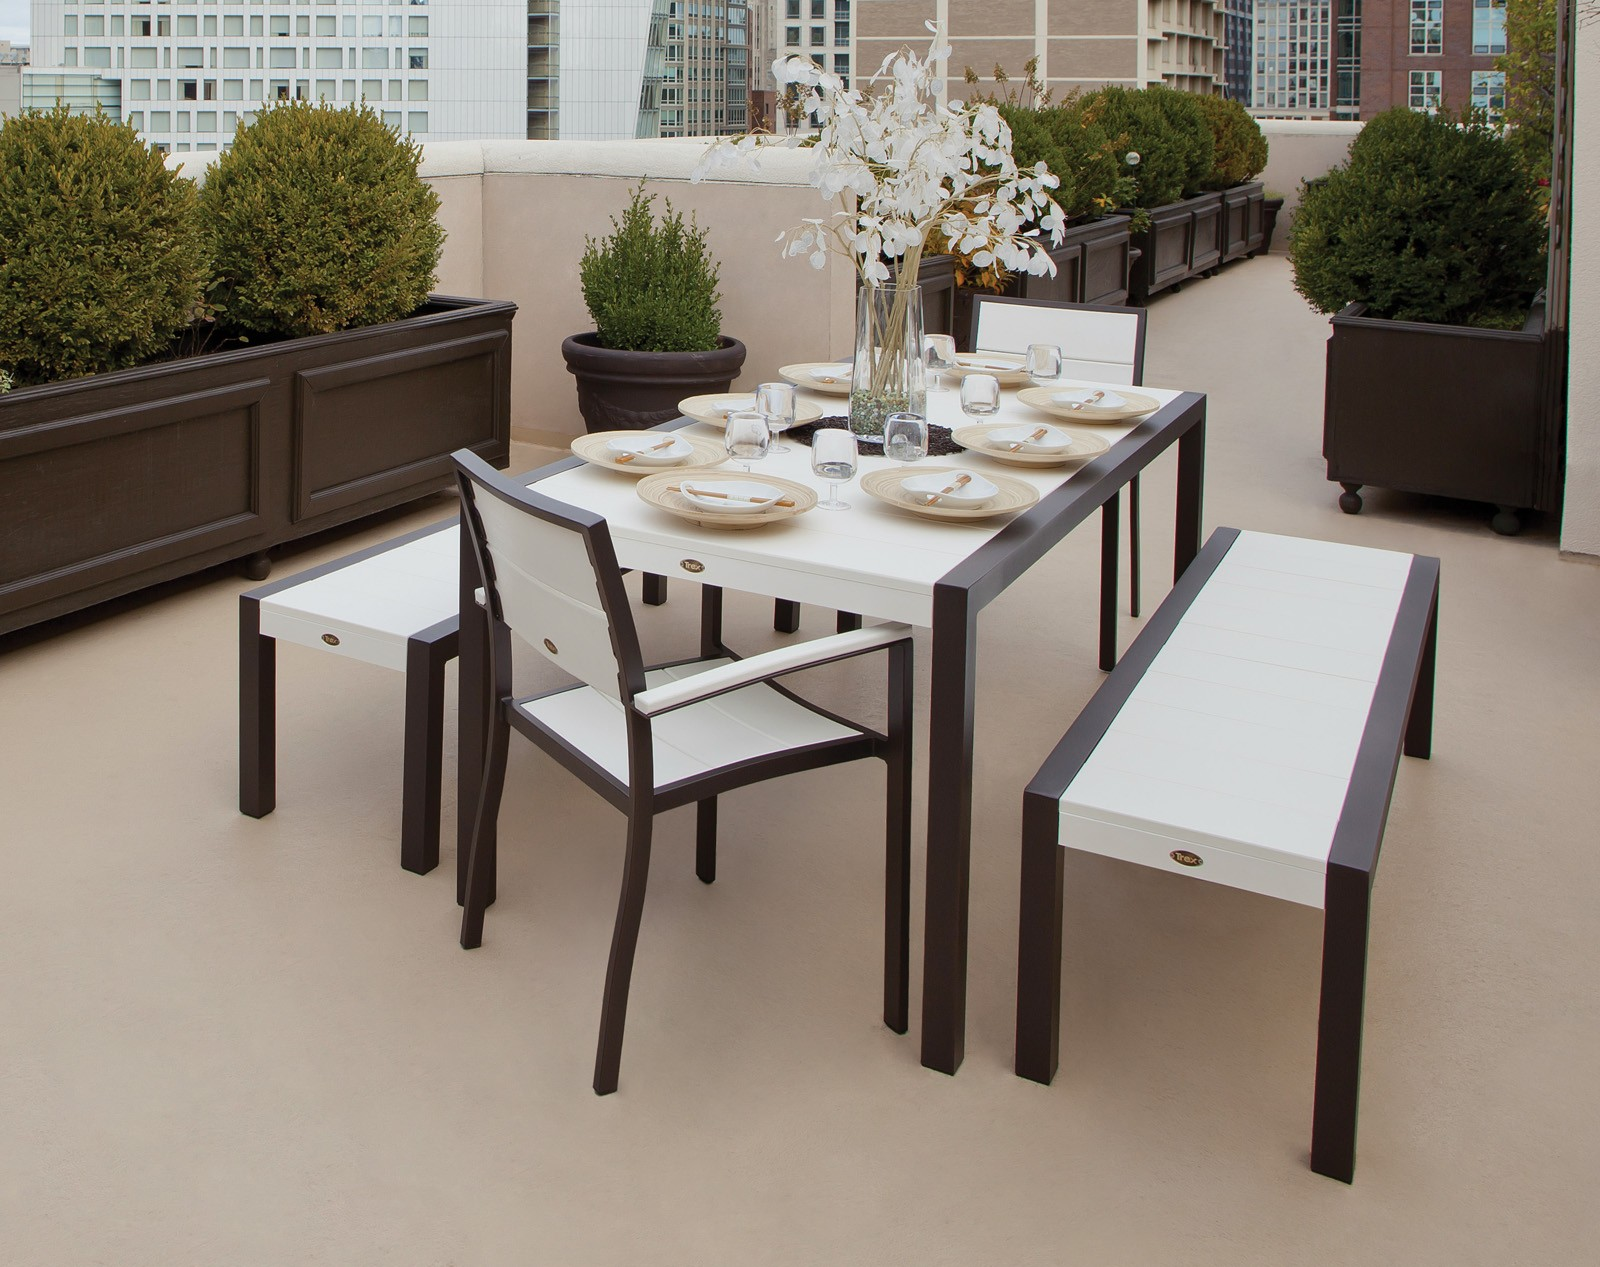 Trex� Outdoor Furniture� Surf City 5 Piece Dining Ensemble with Benches